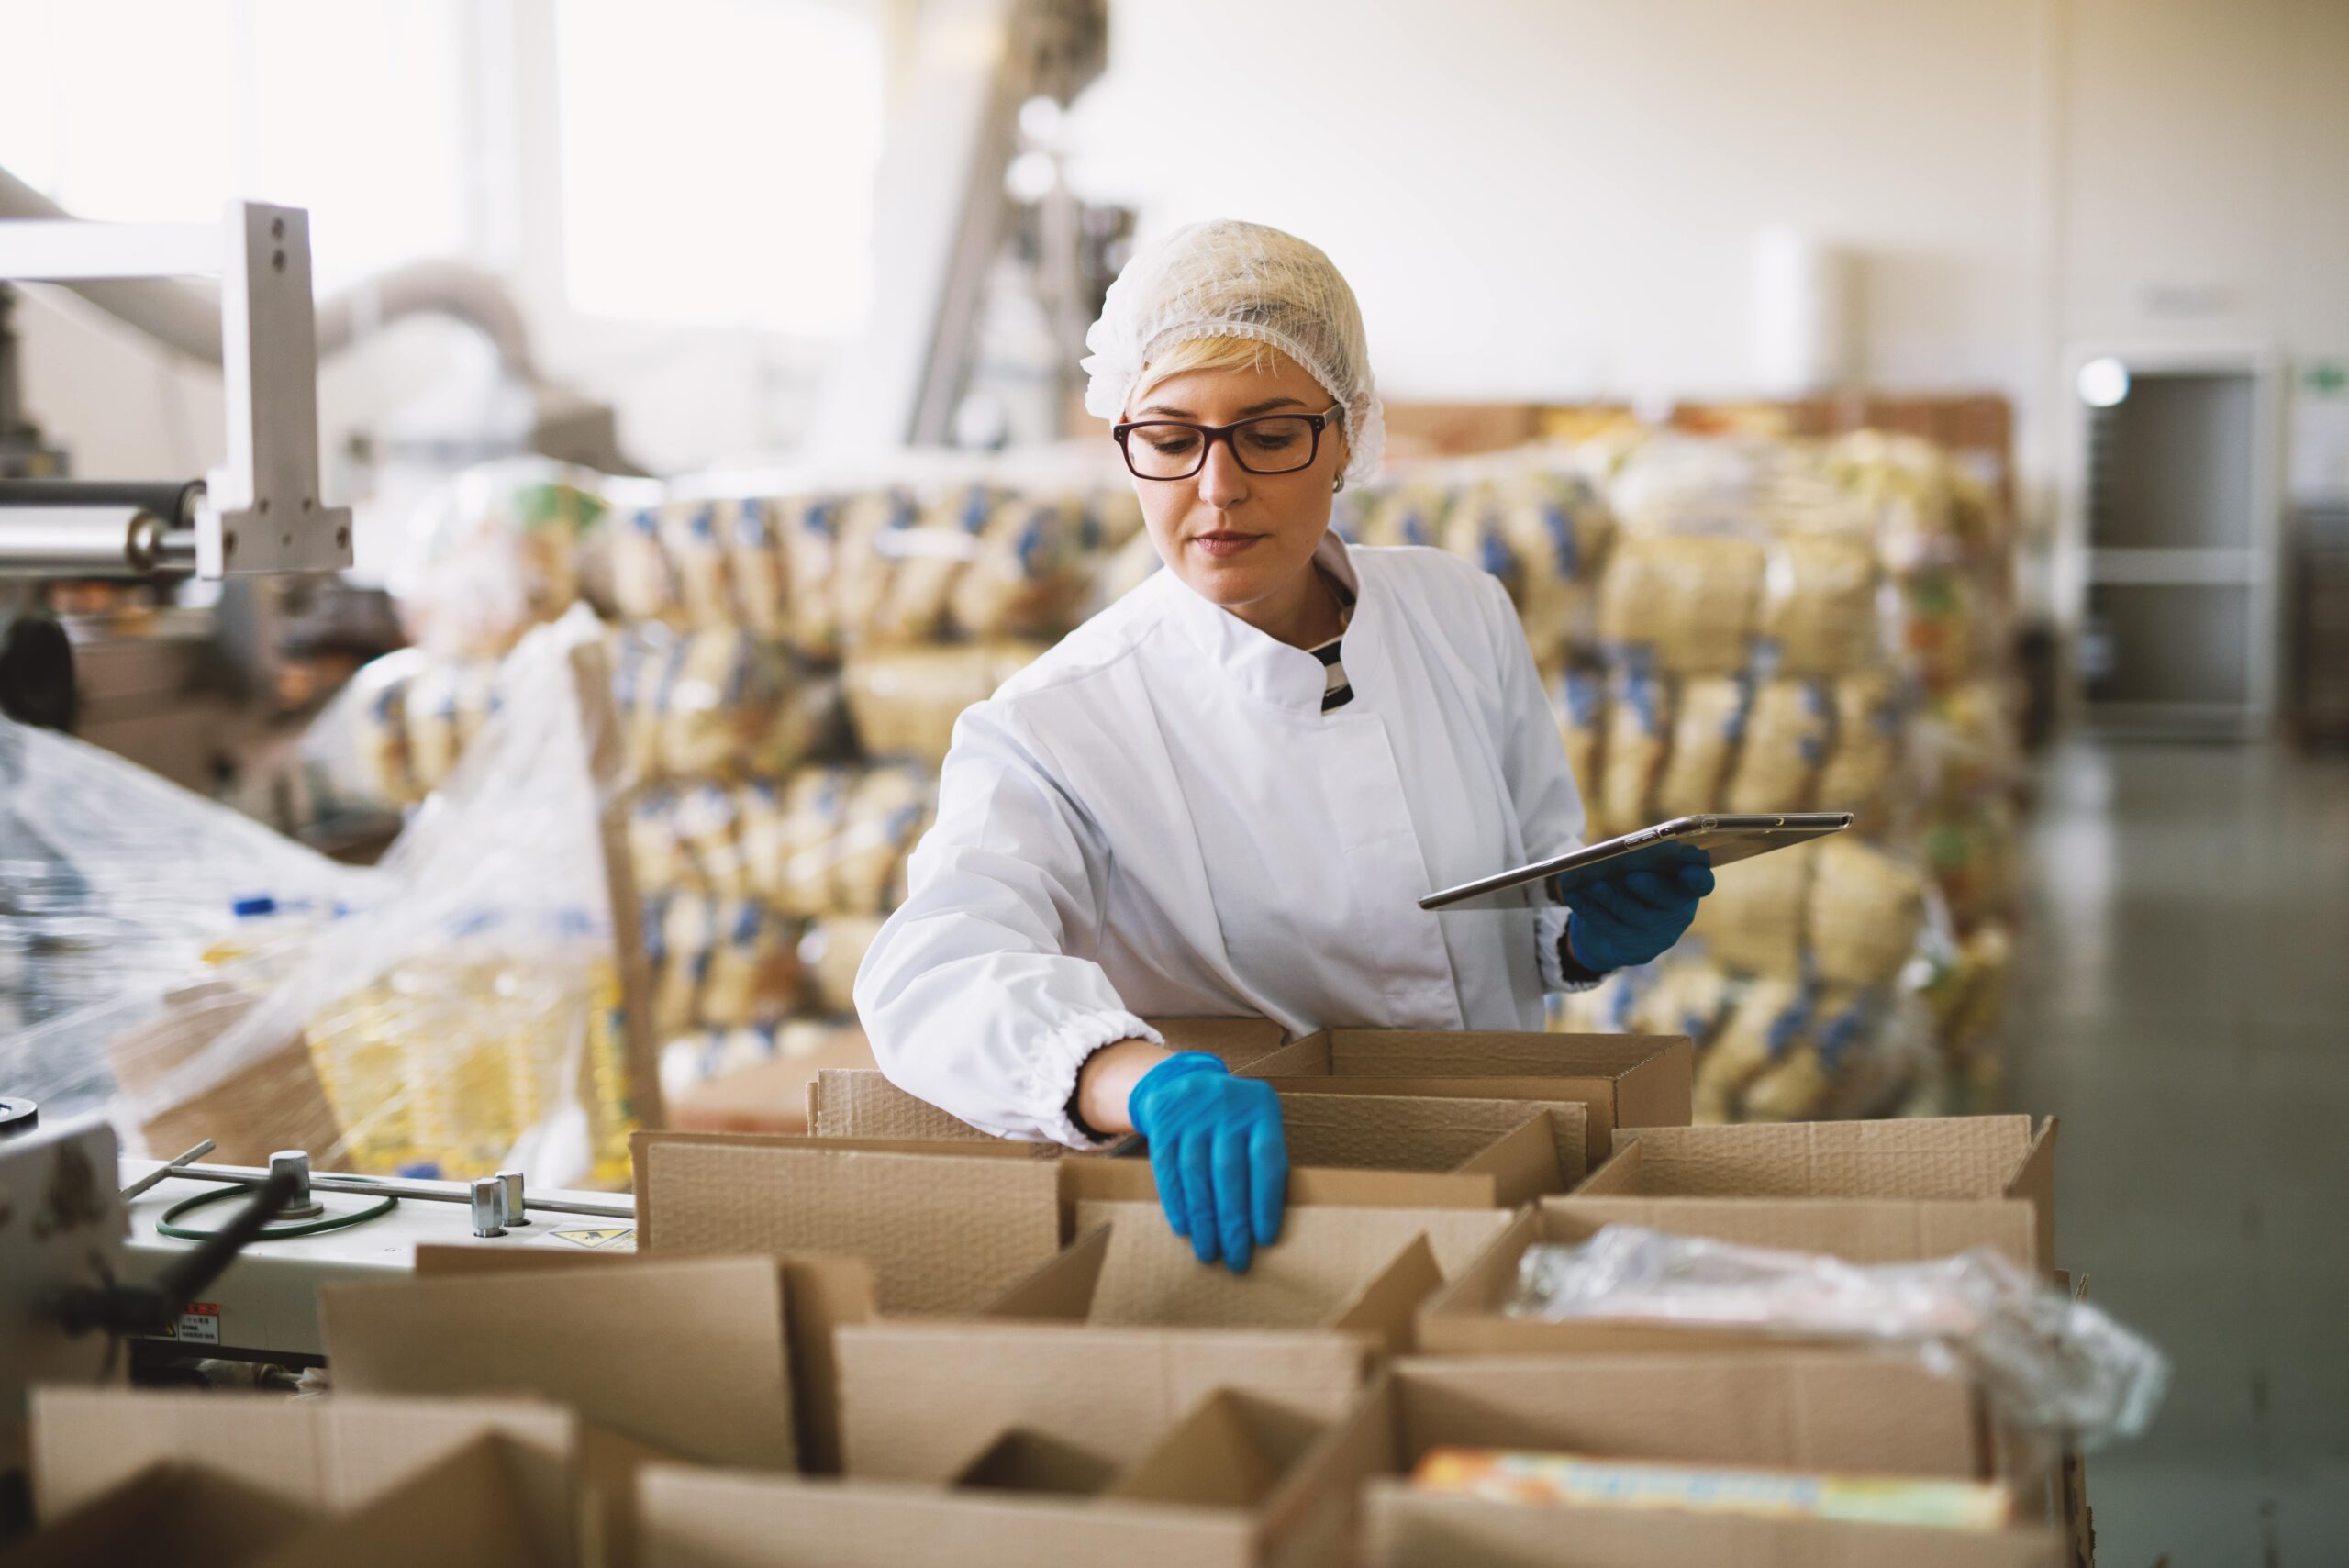 Lady holding tablet wearing blue gloves and lab coat checking boxes in a warehouse